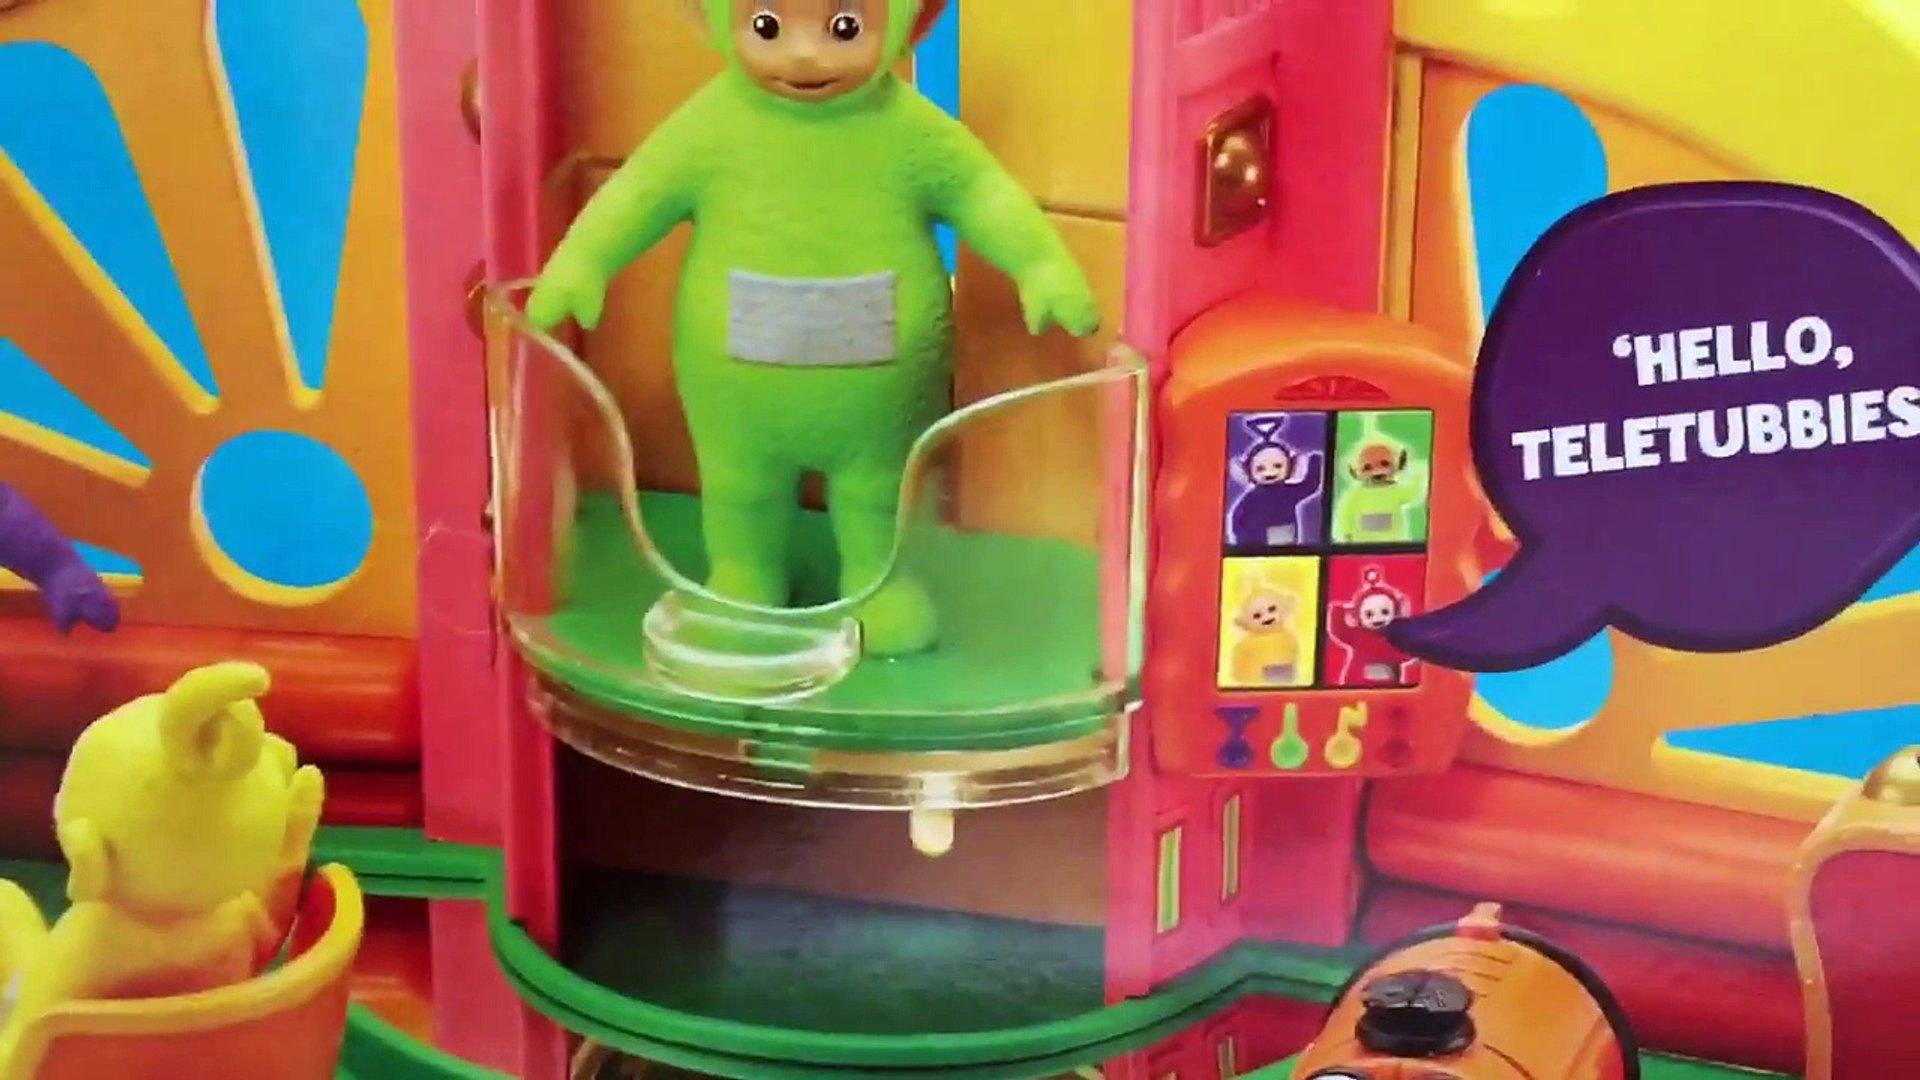 New Teletubbies Toys: Tubby Custard Ride and Superdome Playset - Available in the UK! #Spo